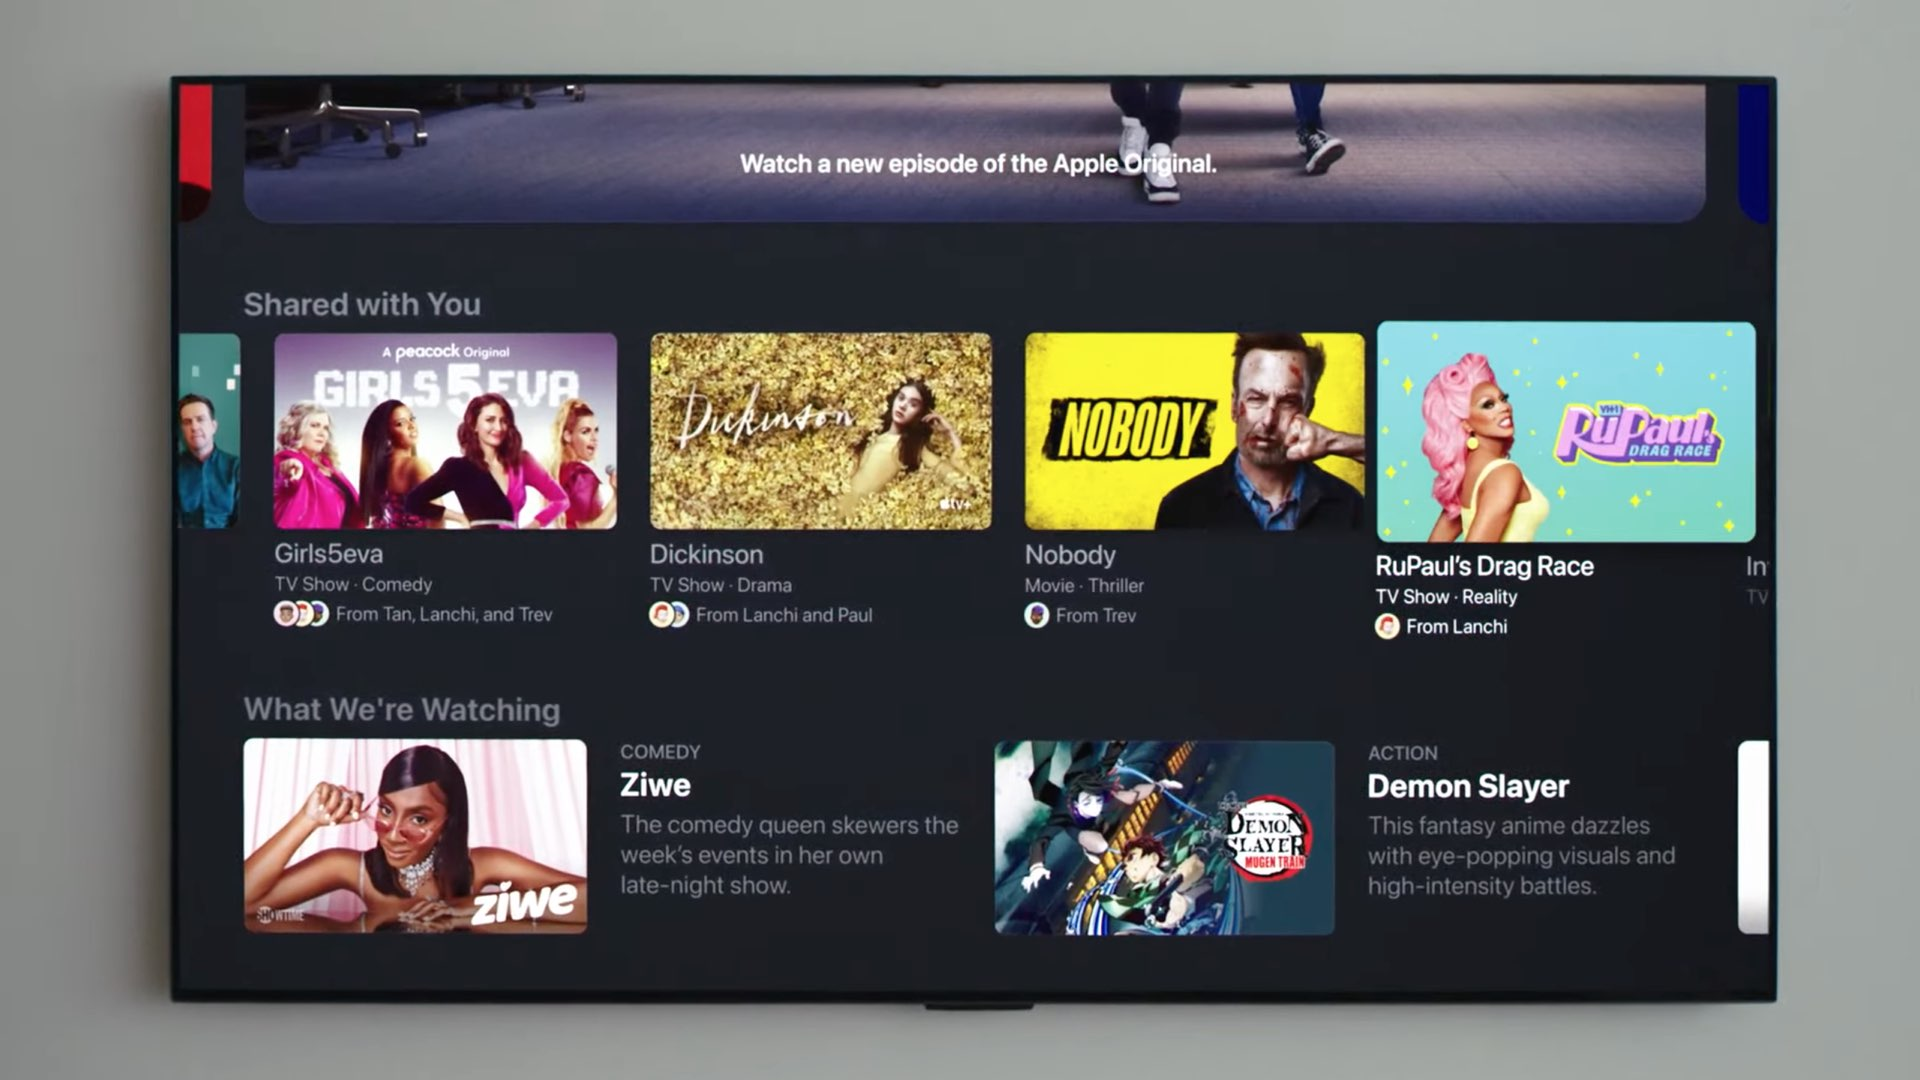 """An image showing the Apple TV app on tvOS 15 with the """"Shared with You"""" section in the For You tab"""